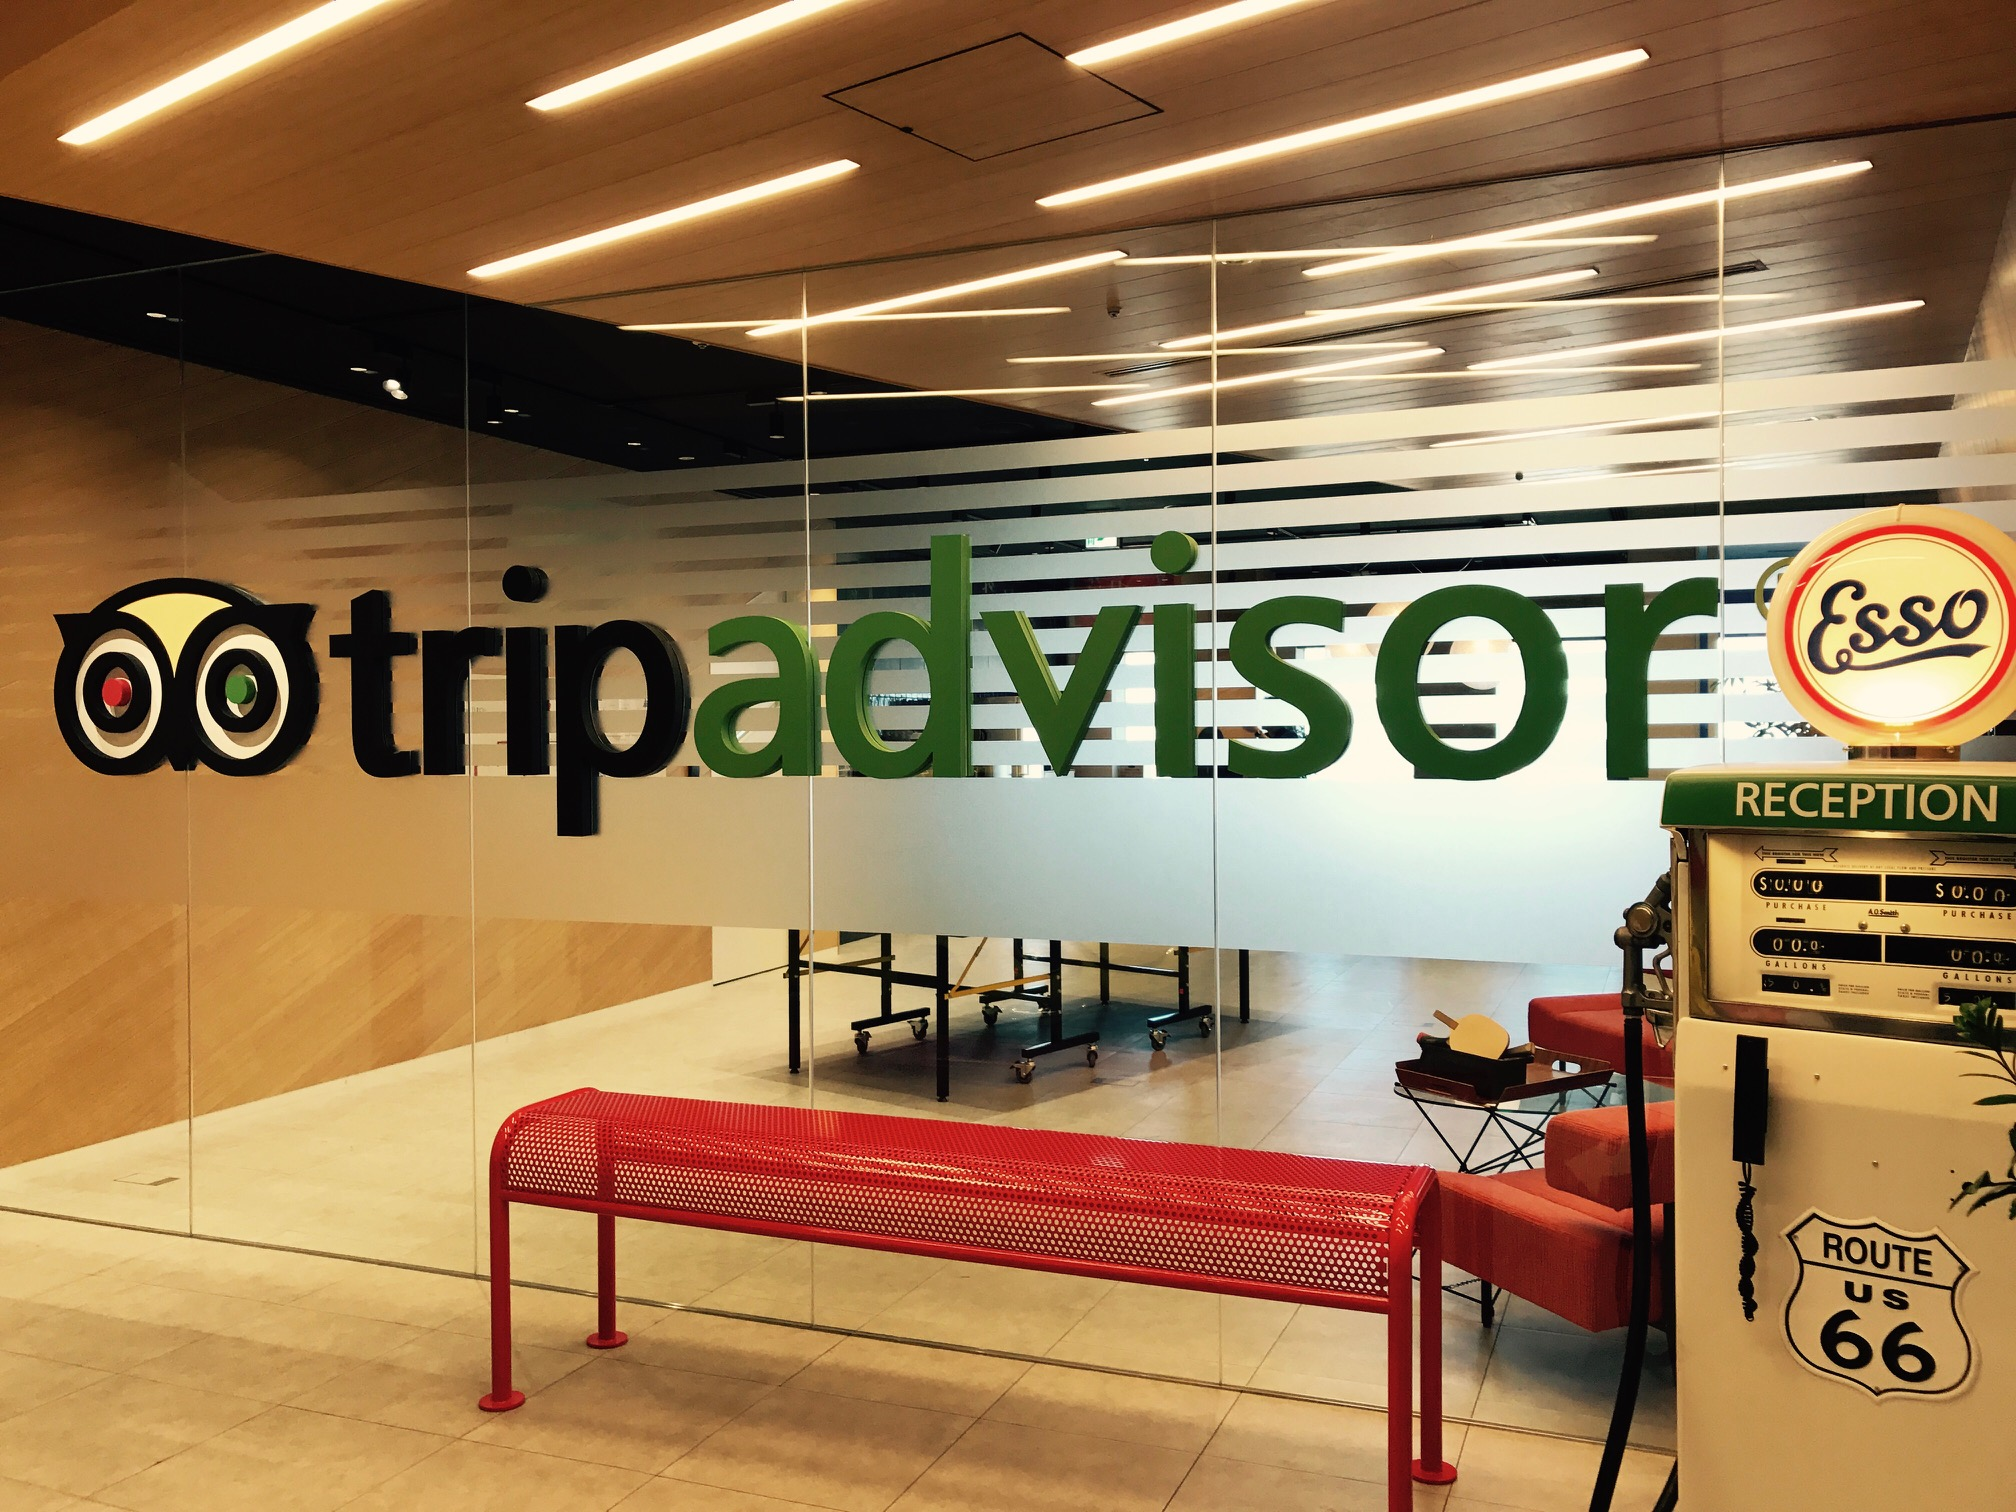 TripAdvisor is trying to increase local experience suppliers in Japan, appealing several merits